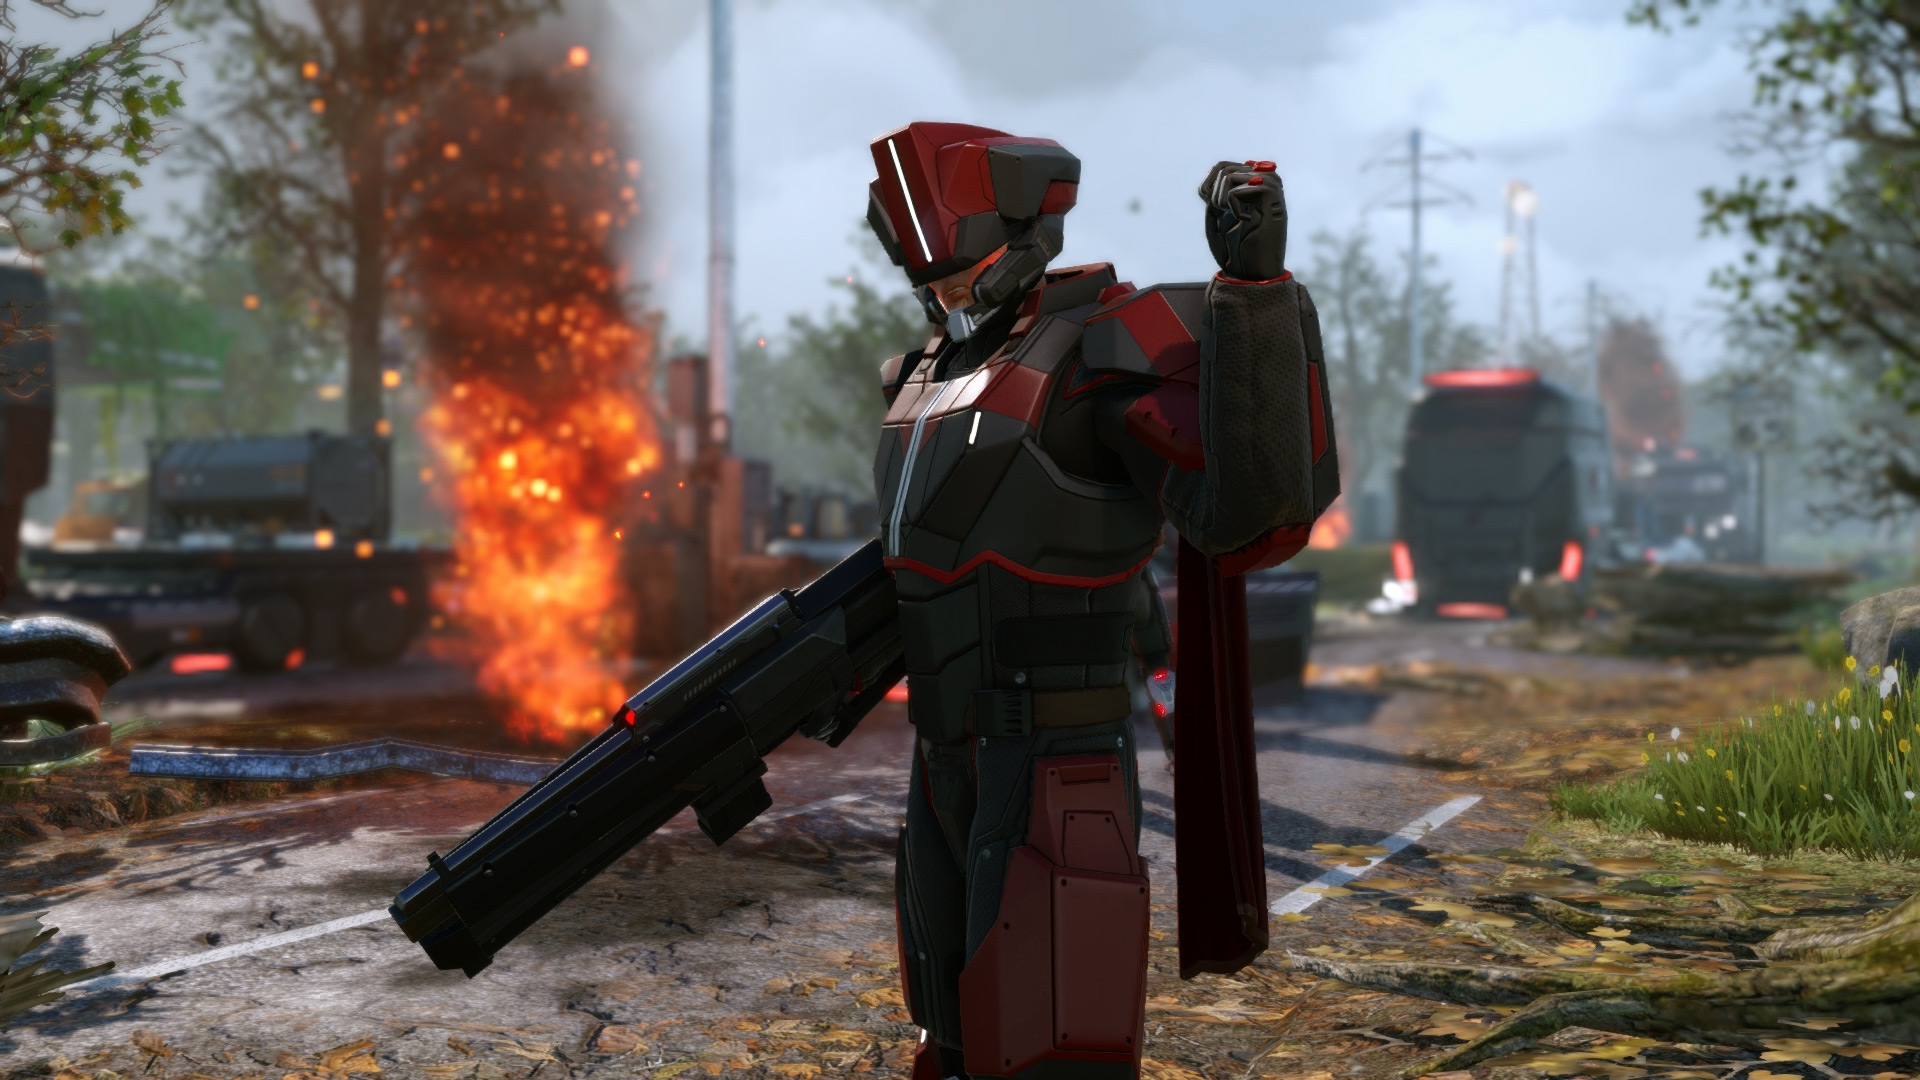 FR - The Aesthetic of Domination: The look of ADVENT and the Archon in XCOM